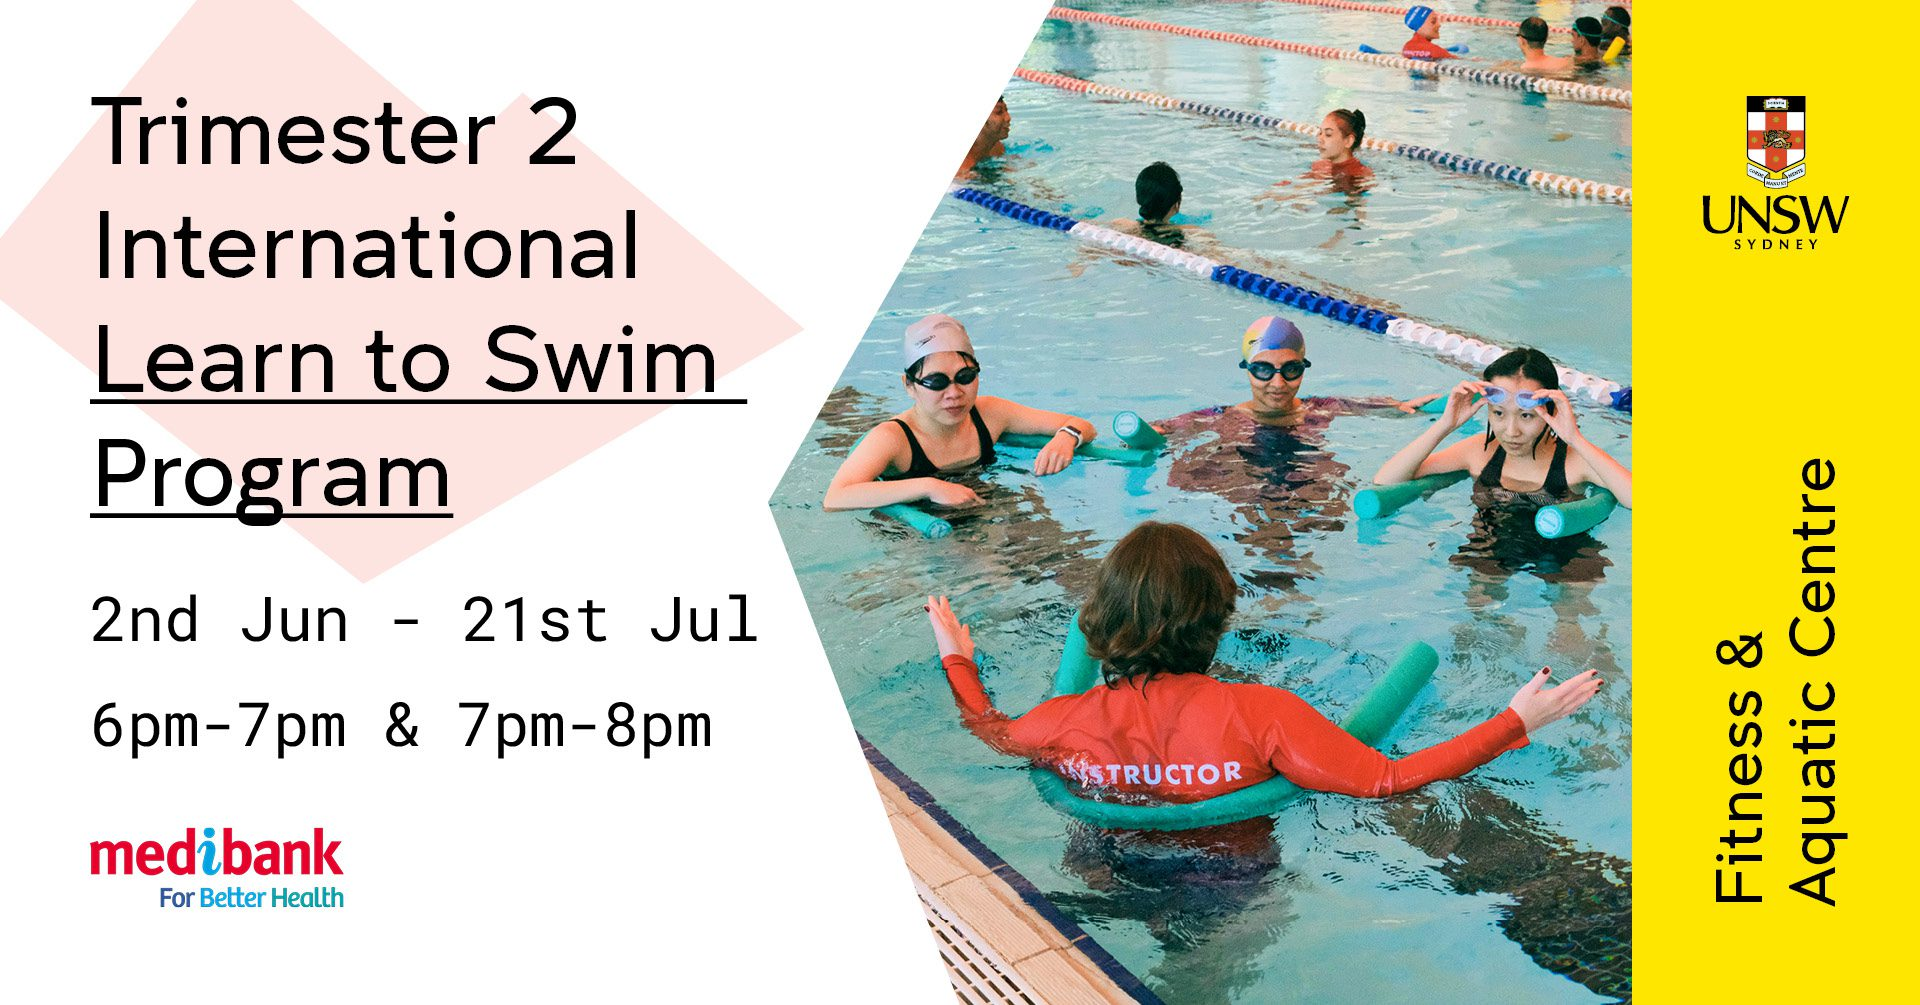 Image of International Learn to Swim Program Promotional Flyer. Text reads 'Trimester 2 International Learn to Swim Program 2nd Jun - 21st Jul 6pm-7pm & 7pm - 8pm'